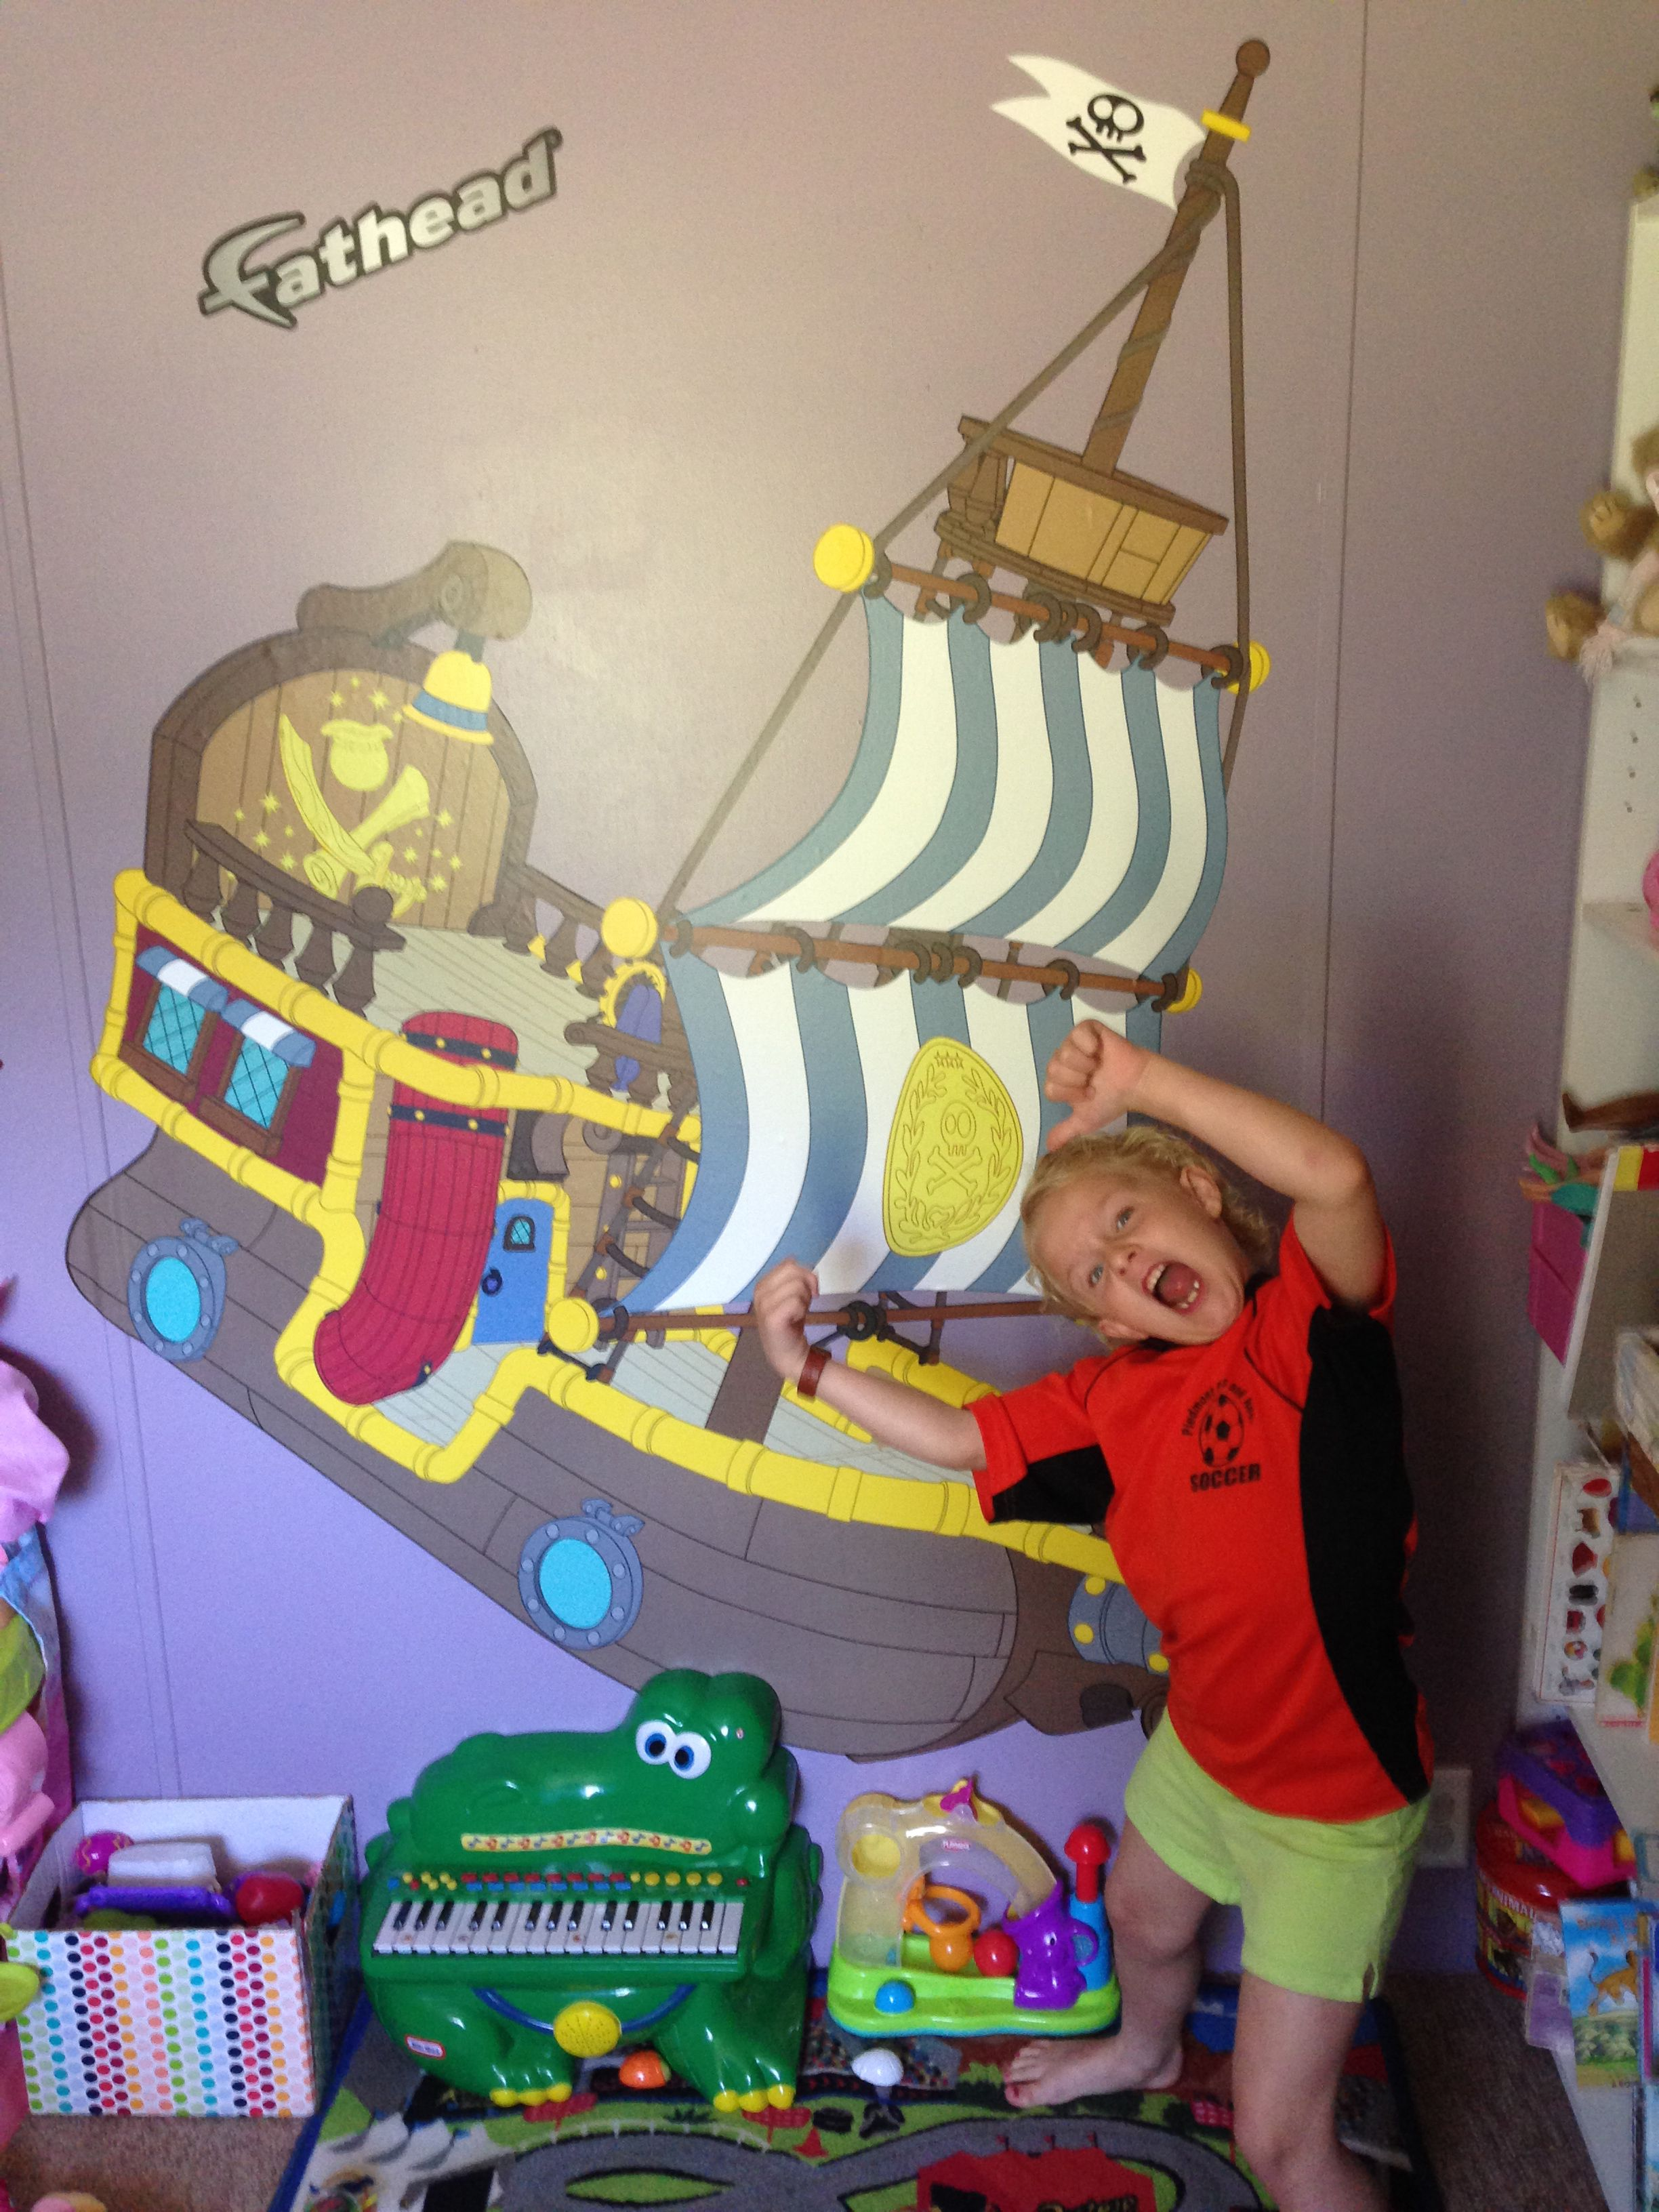 Jake and the Neverland Pirates: Bucky the Pirate Ship ...